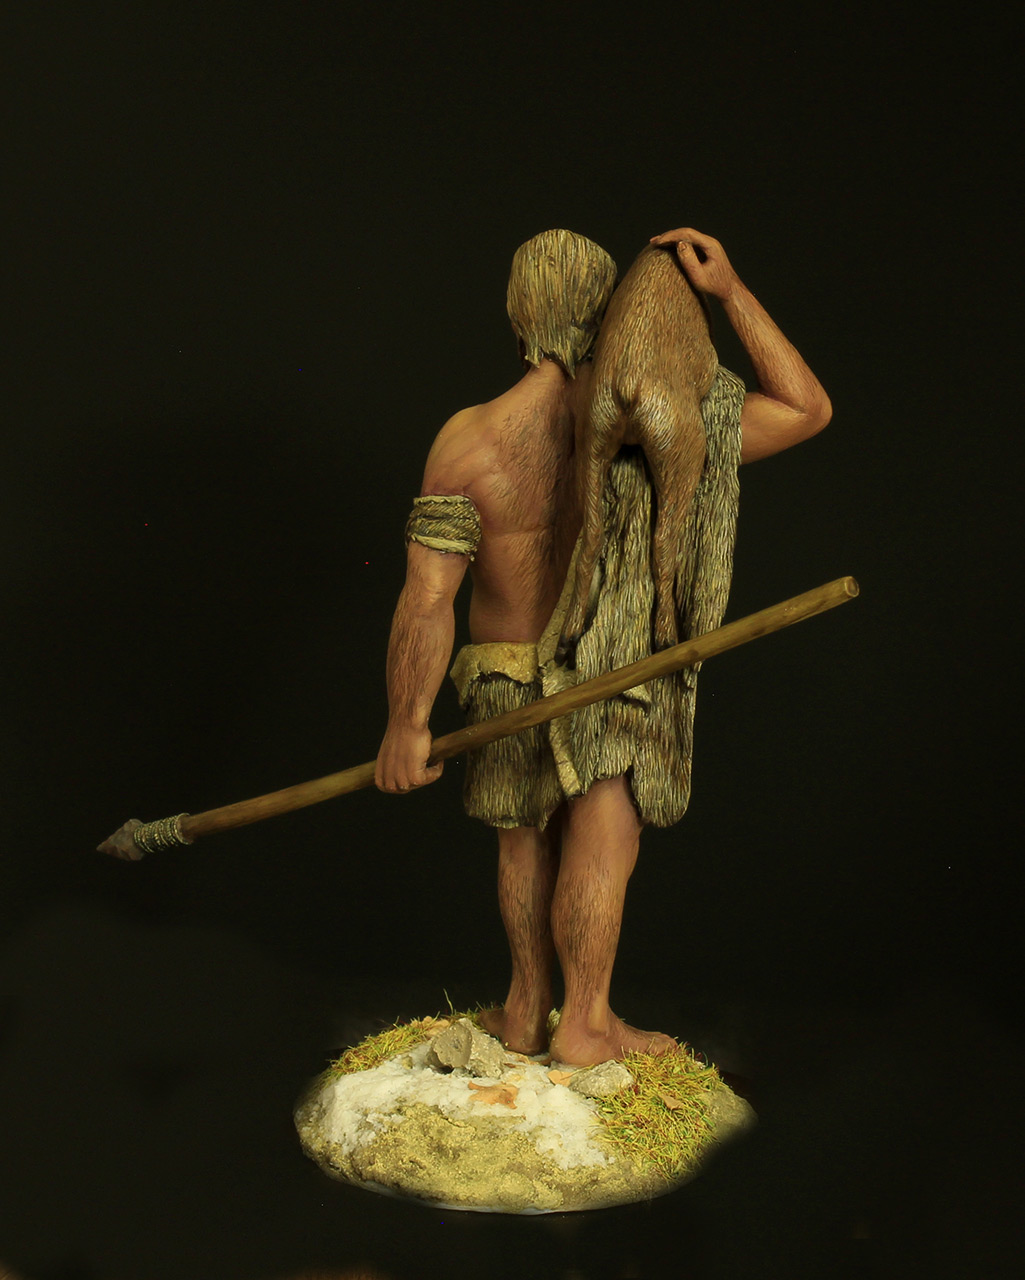 Figures: The Neanderthal, photo #4